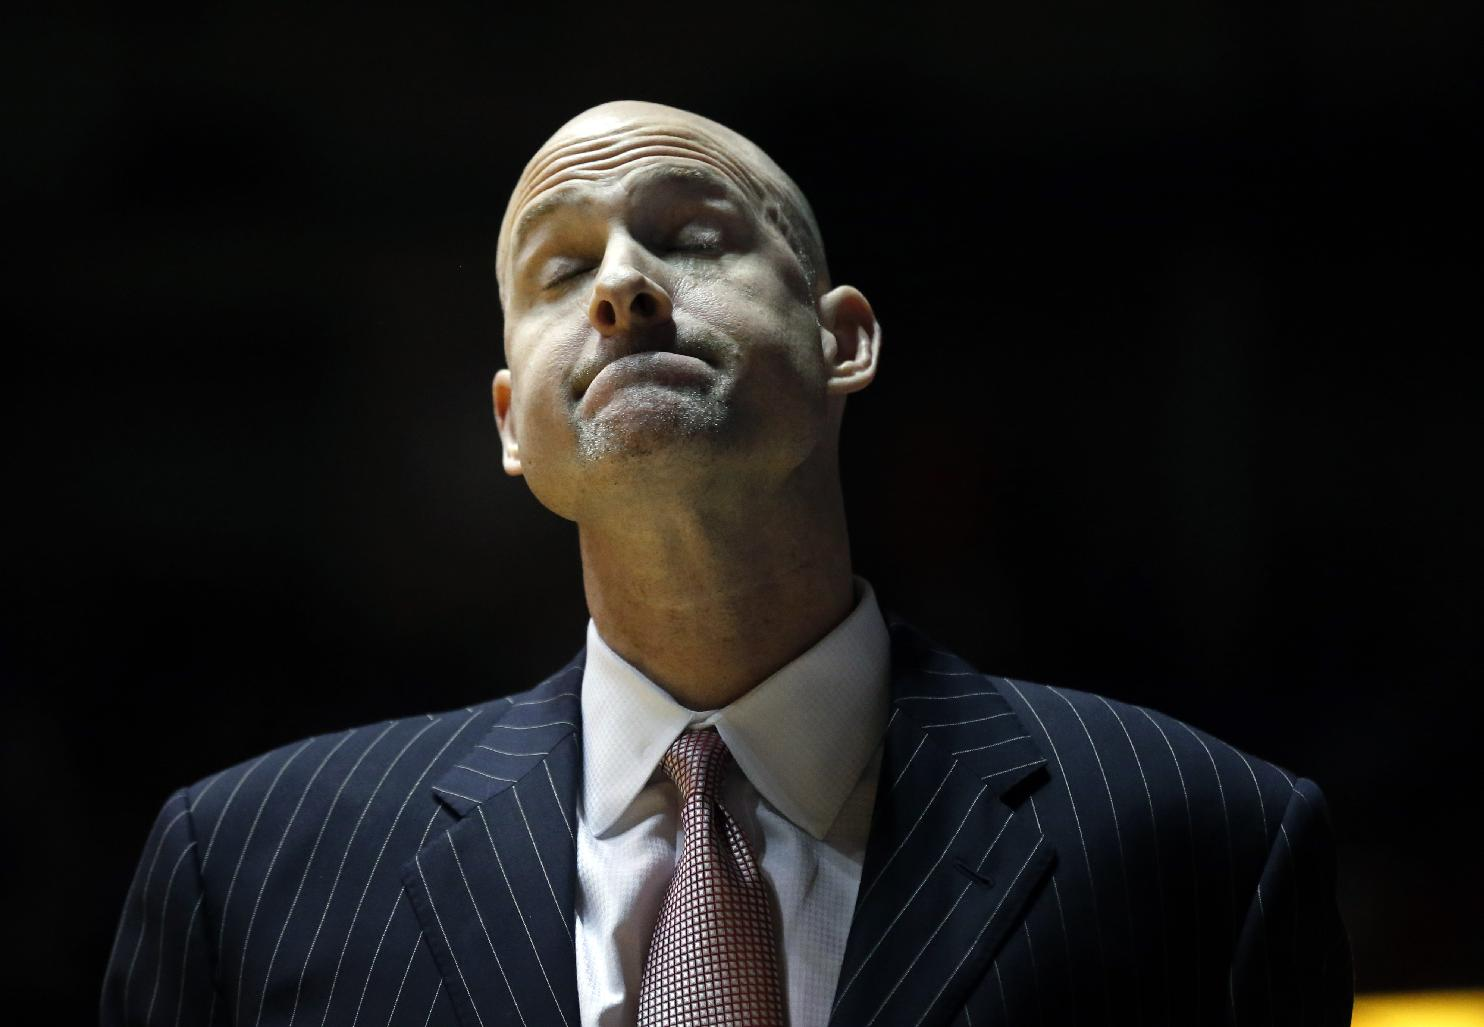 Mississippi basketball coach Andy Kennedy reacts to a missed attempt against Florida in the second half of an NCAA college basketball game in Oxford, Miss., Saturday, Feb. 22, 2014. No. 2 Florida won 75-71